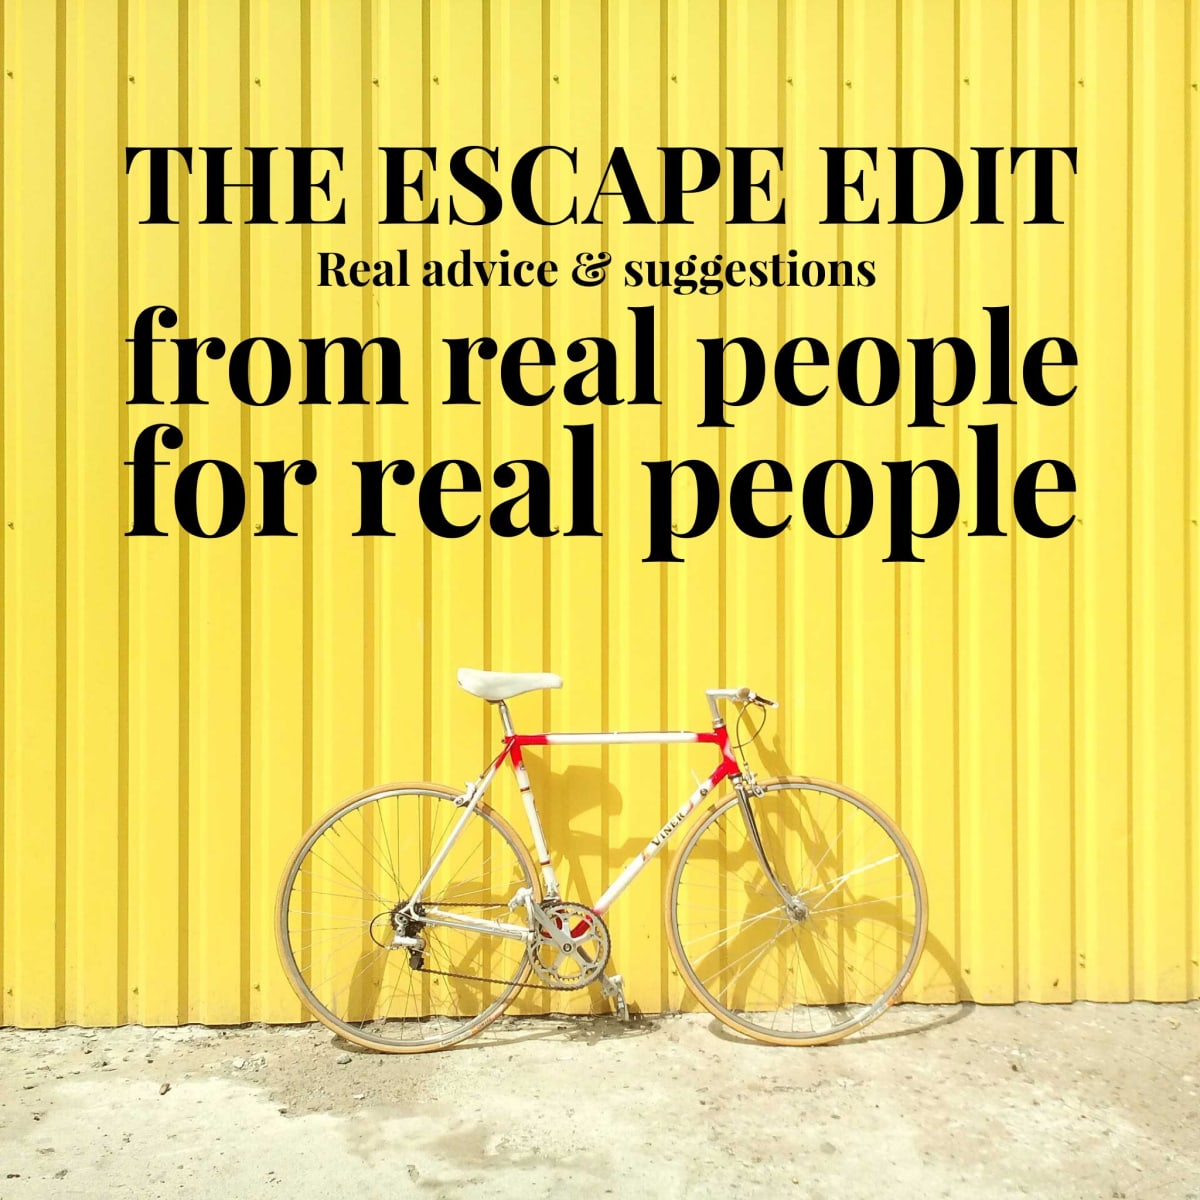 Introducing The Escape Edit